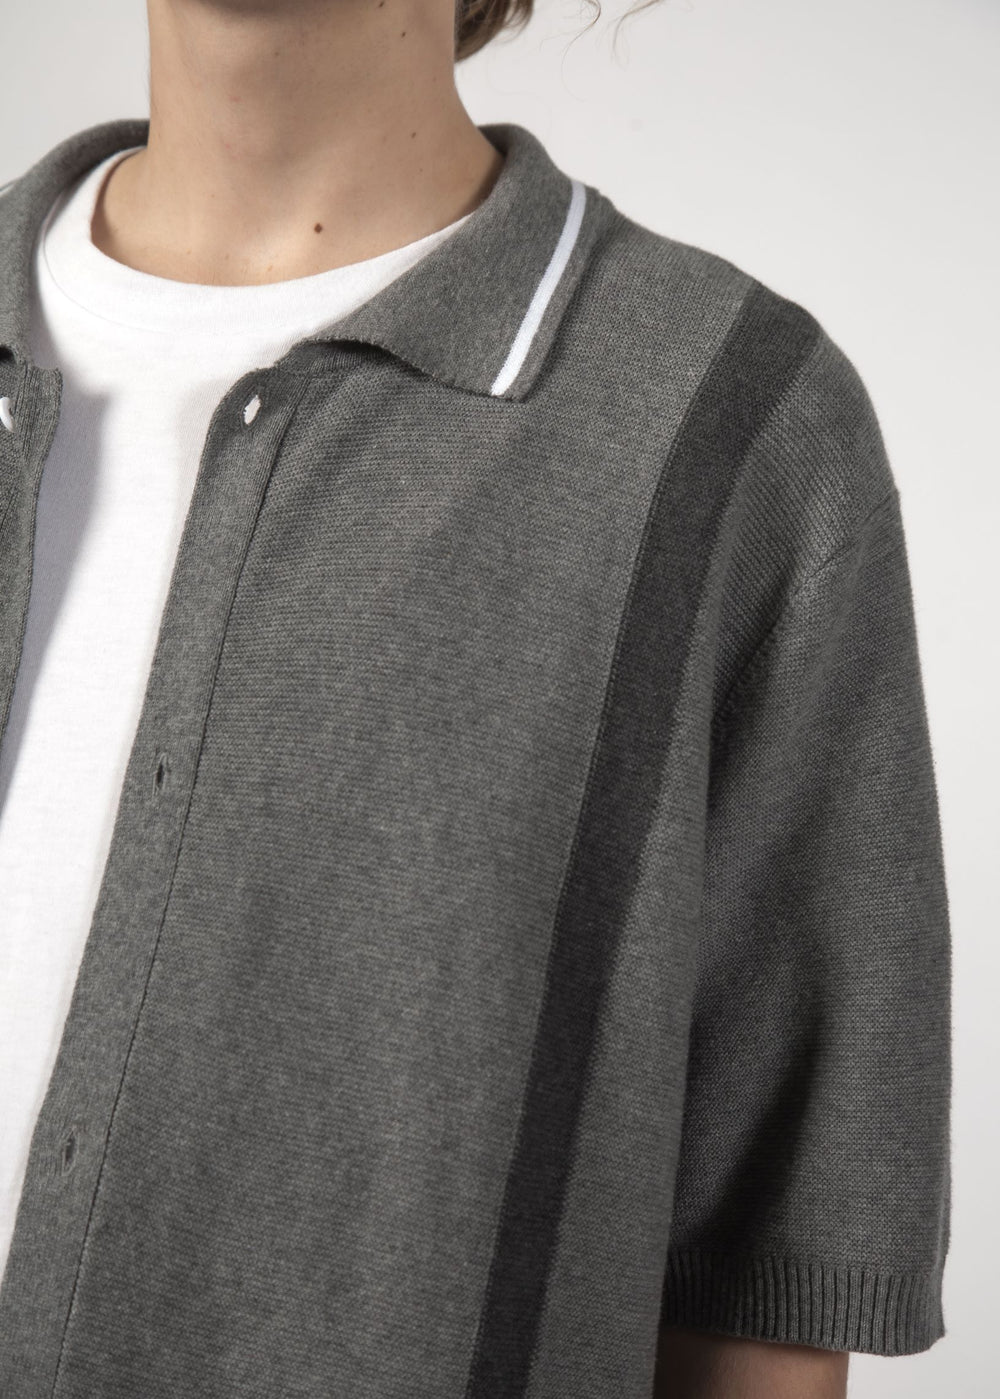 SALE - STRAY KNIT SHIRT - Grey Marle